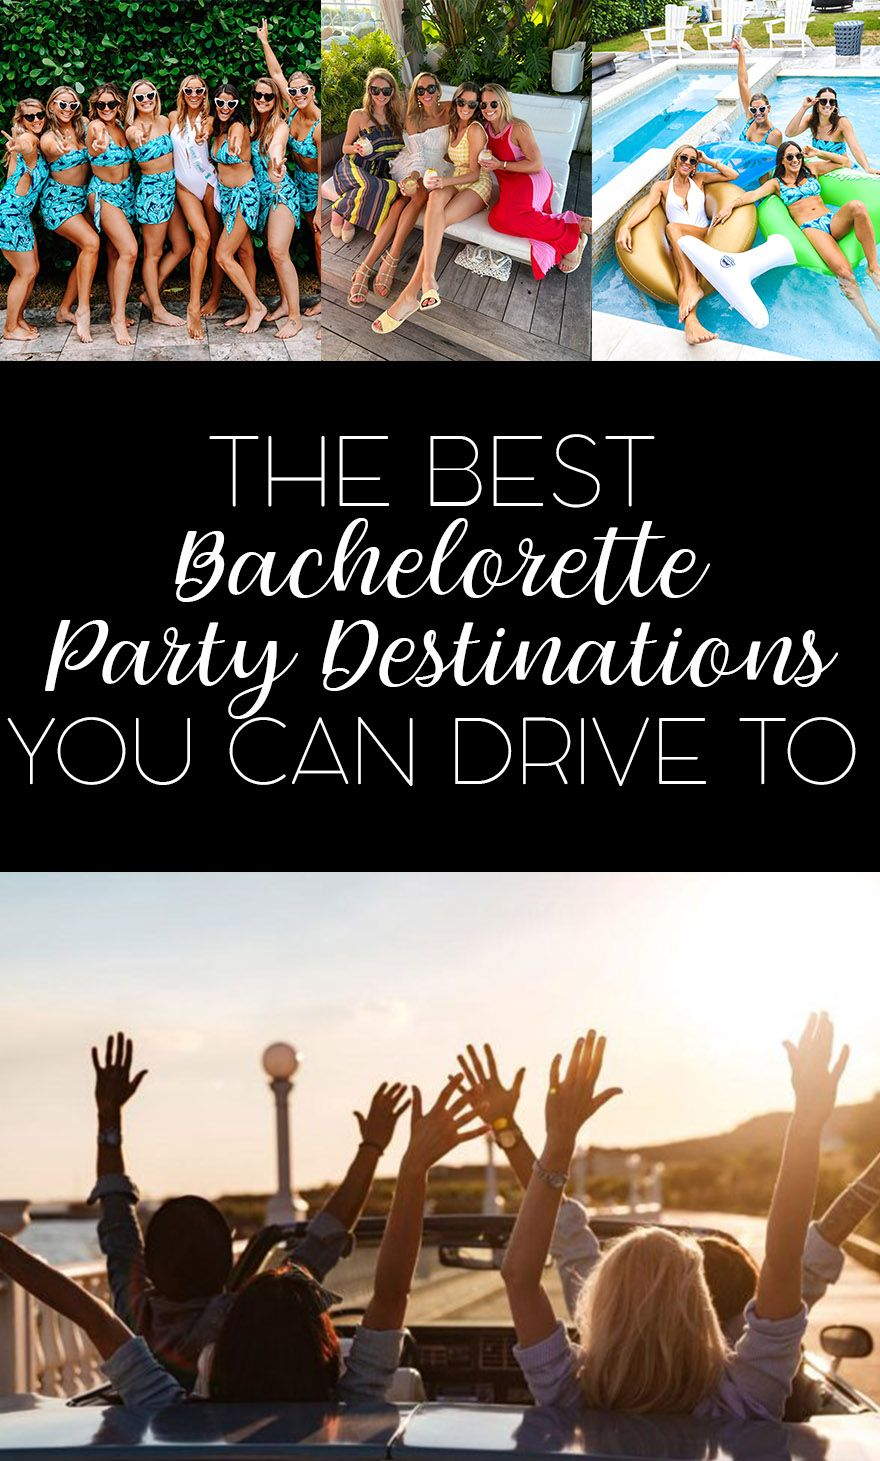 The Best Drivable Bachelorette Party Destinations In The Usa Bachelorette Parties You Can Drive To From The West Coast South Midwest And East Coast Jetset Bachelorette Party Destinations Bachelorette Bachelorette Party